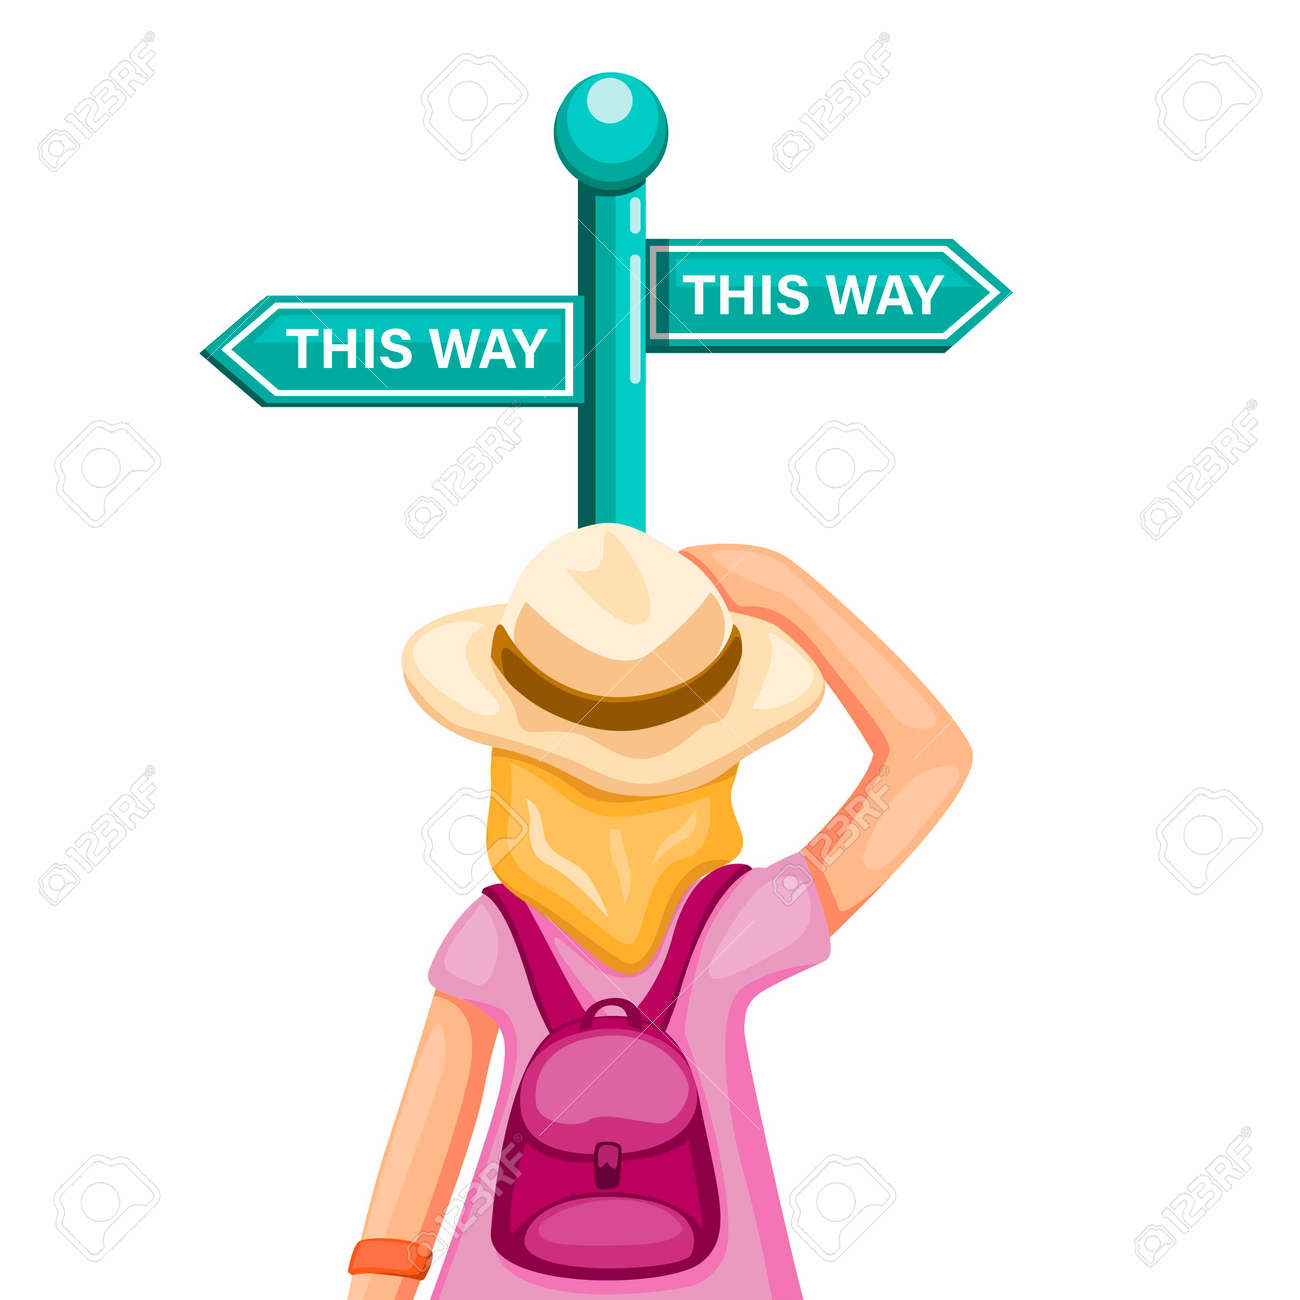 Backpacker girl confusing choose way in road signboard, metaphor advertisment for travel and trip guidance symbol in cartoon illustration vector isolated in white background - 151348524